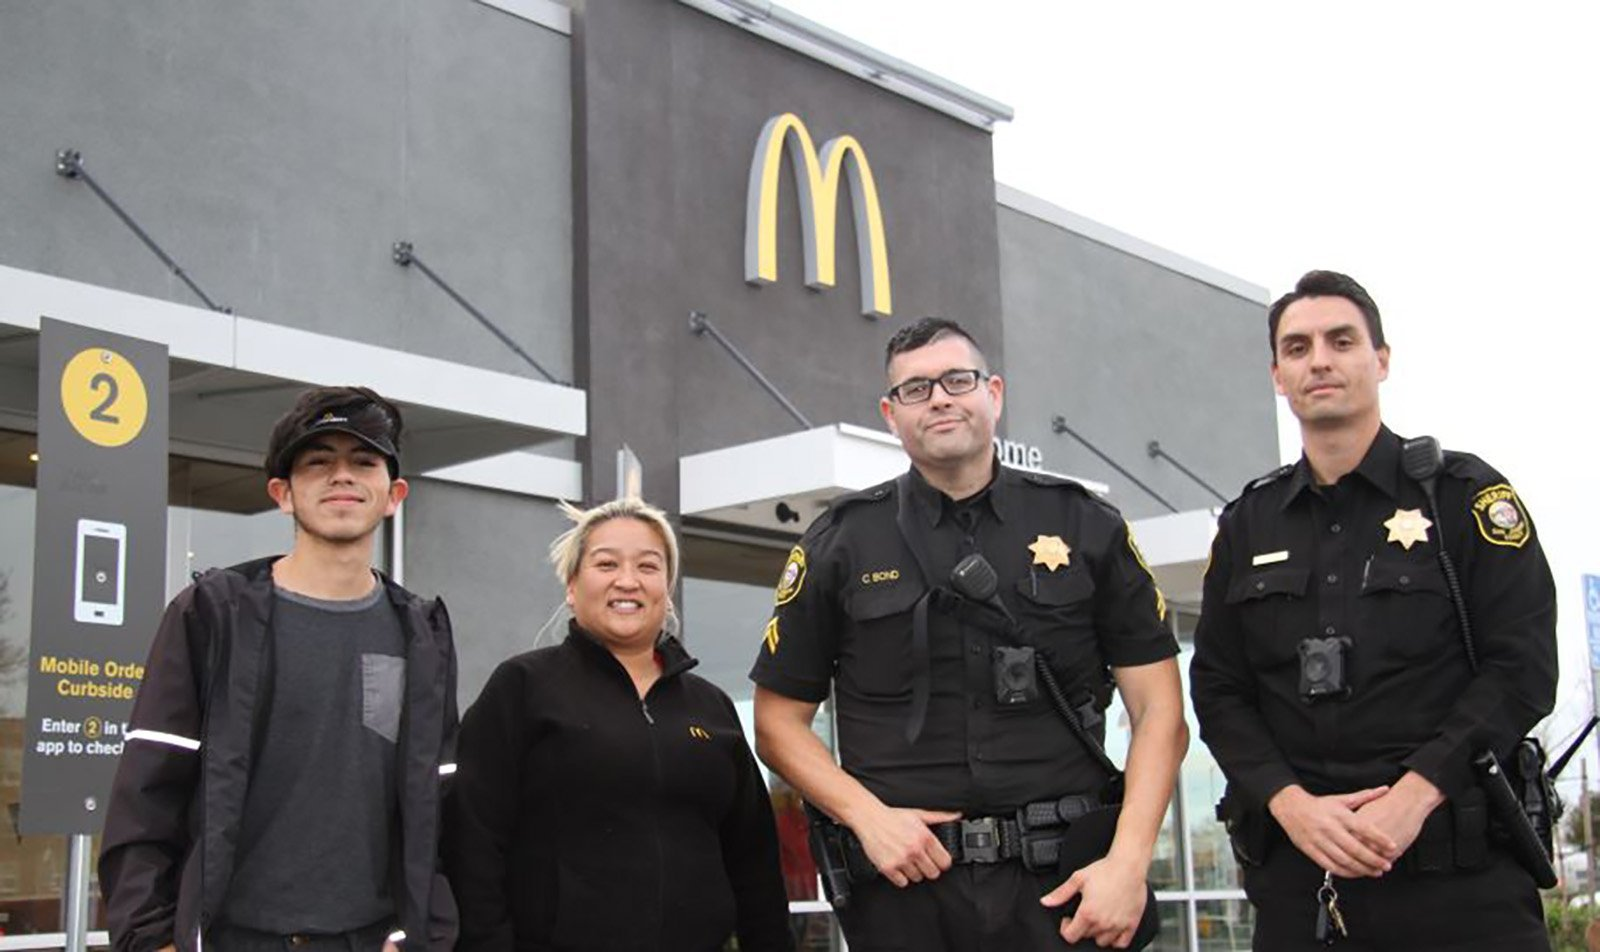 McDonald's employees save woman who mouthed